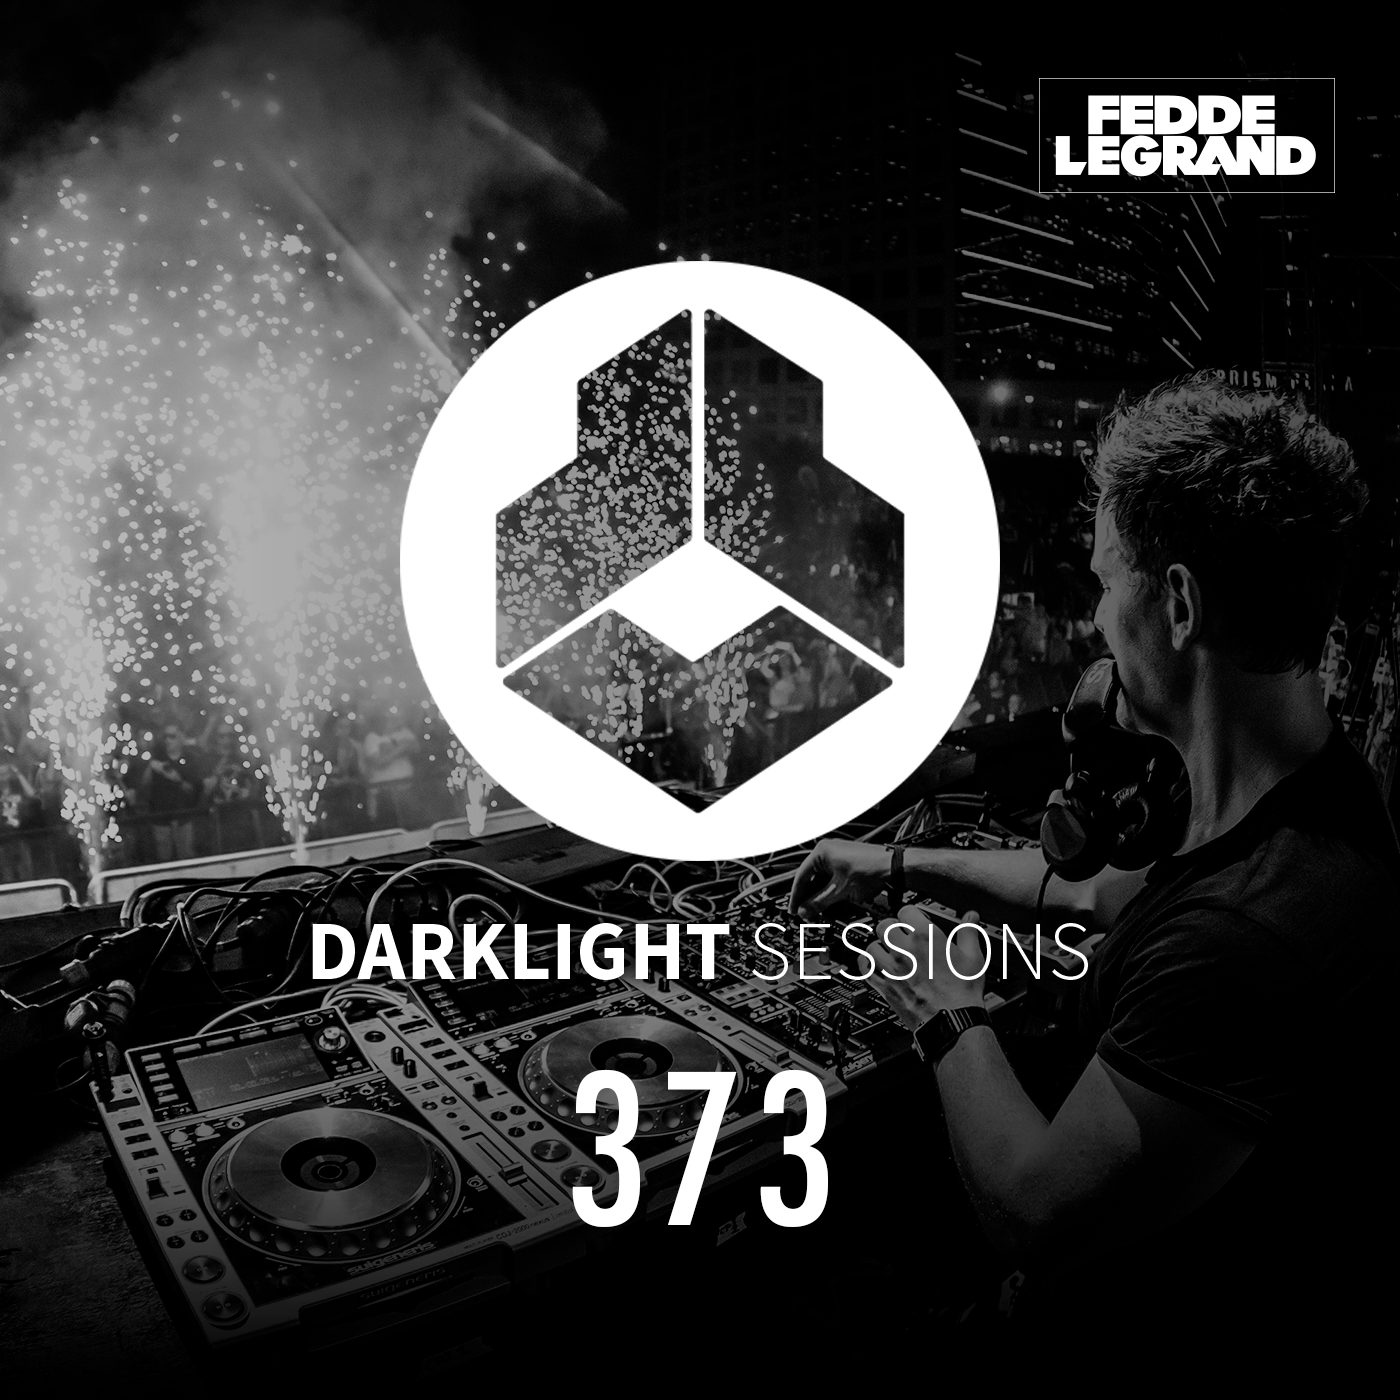 Darklight Sessions 373